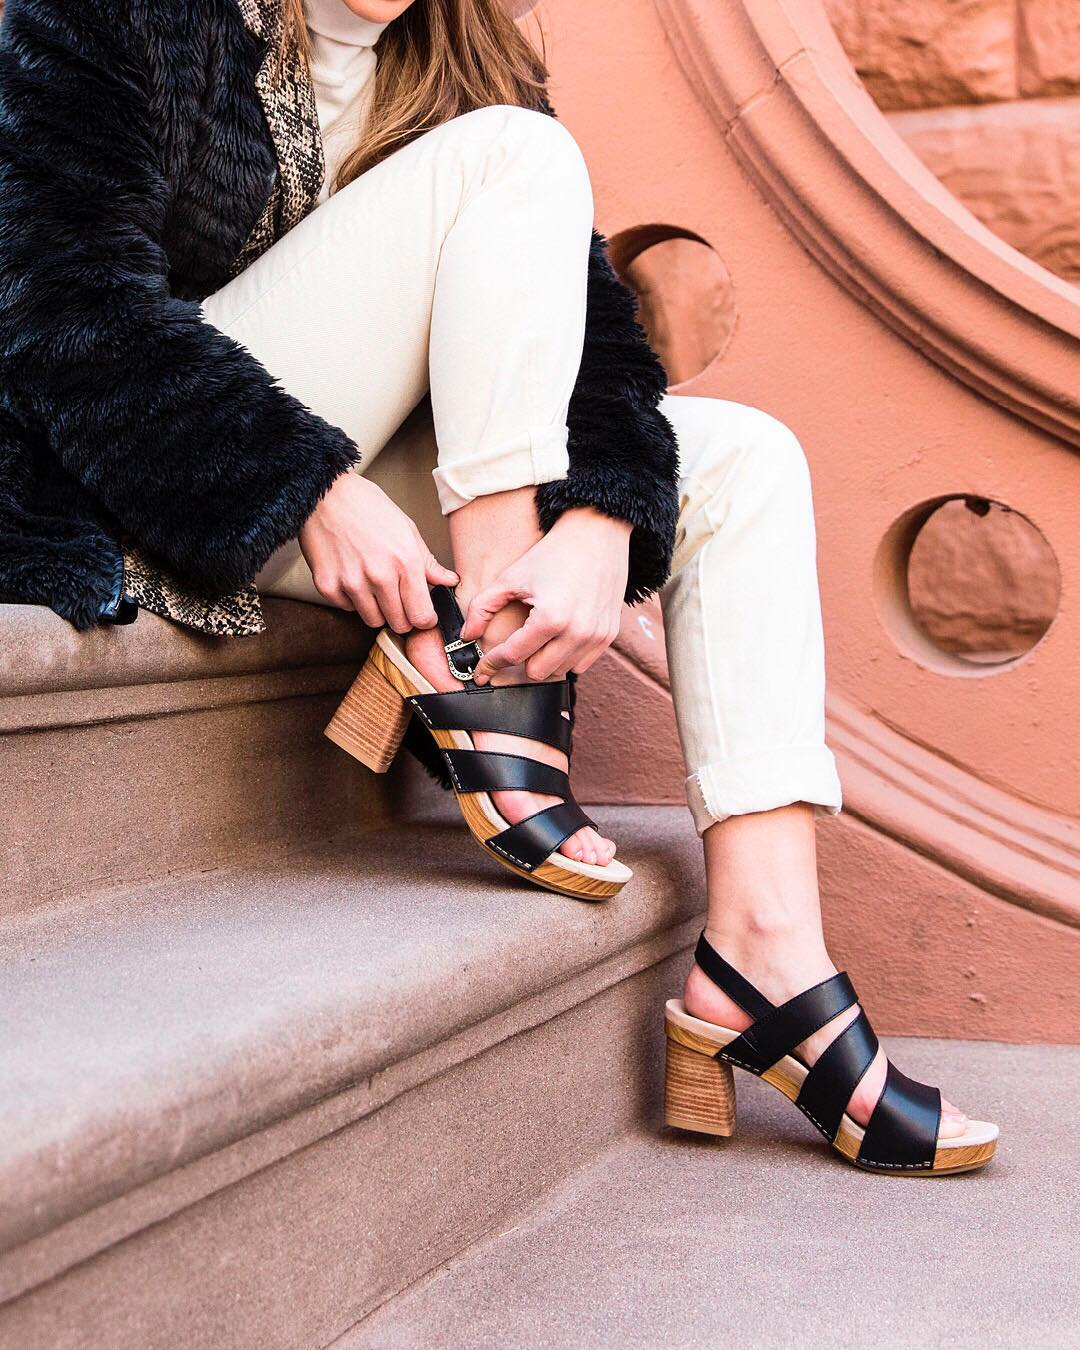 f92d74a6c874 The Ashlee sandal from Dansko is a versatile heel that pairs well with both  work attire